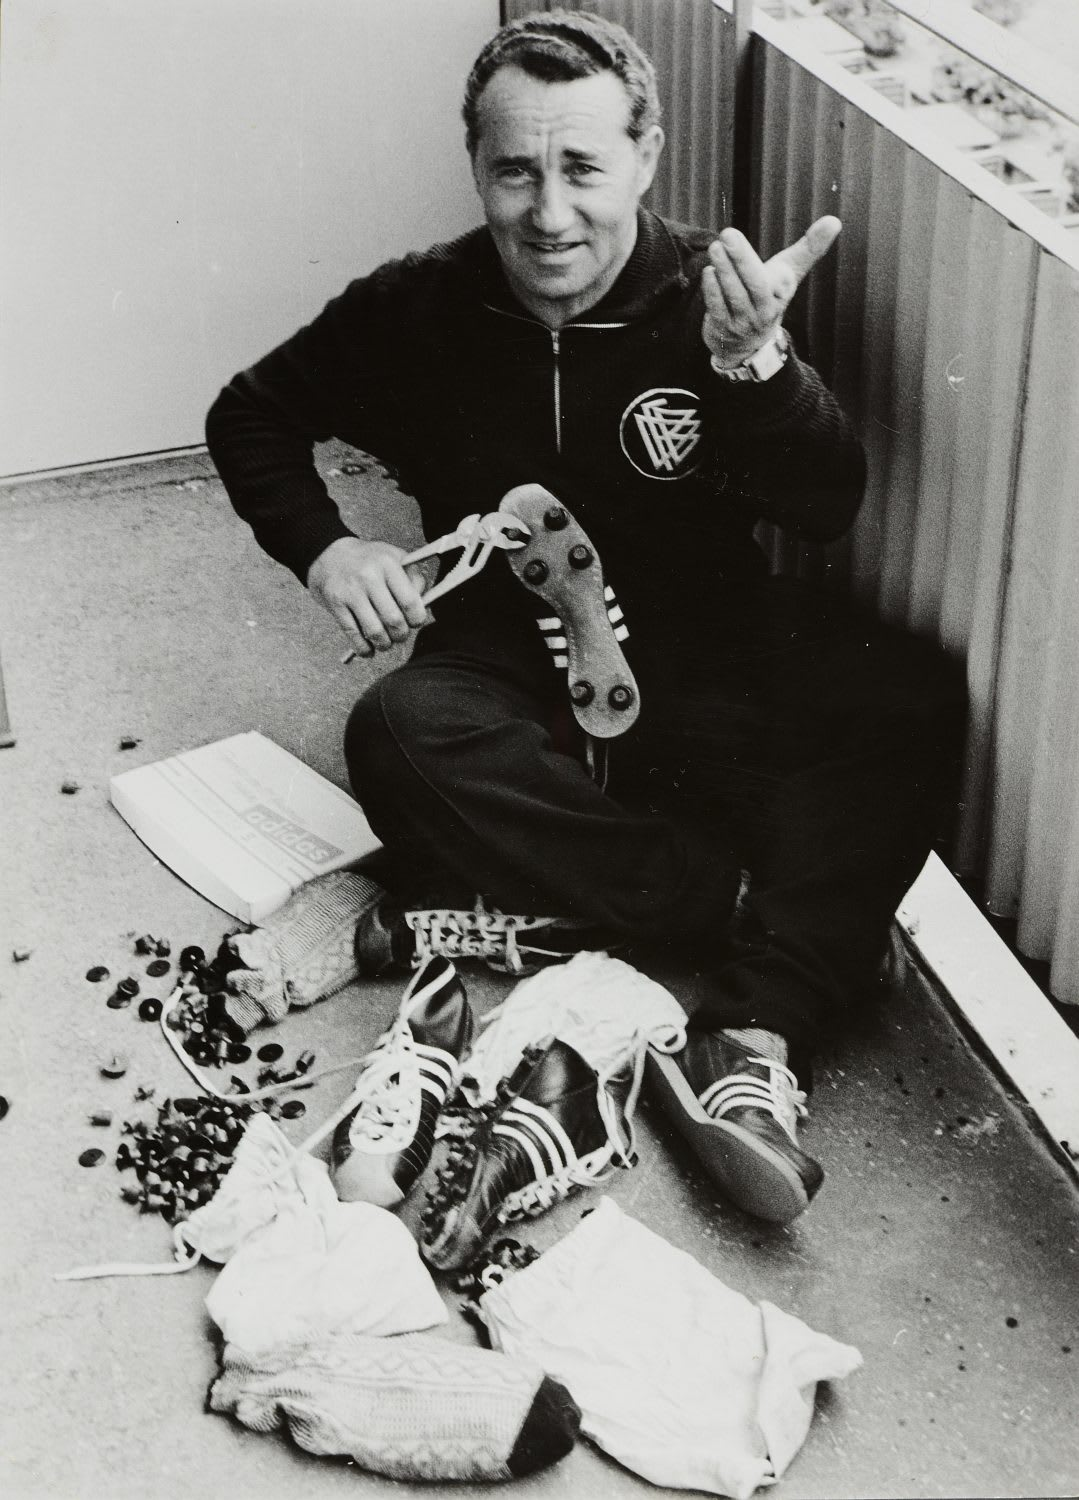 Black and white photo of man sitting on the ground using tools to build vintage football boots, Adolf, Dassler, Adi, adidas, sports, shoes, shoemaker, history, archive